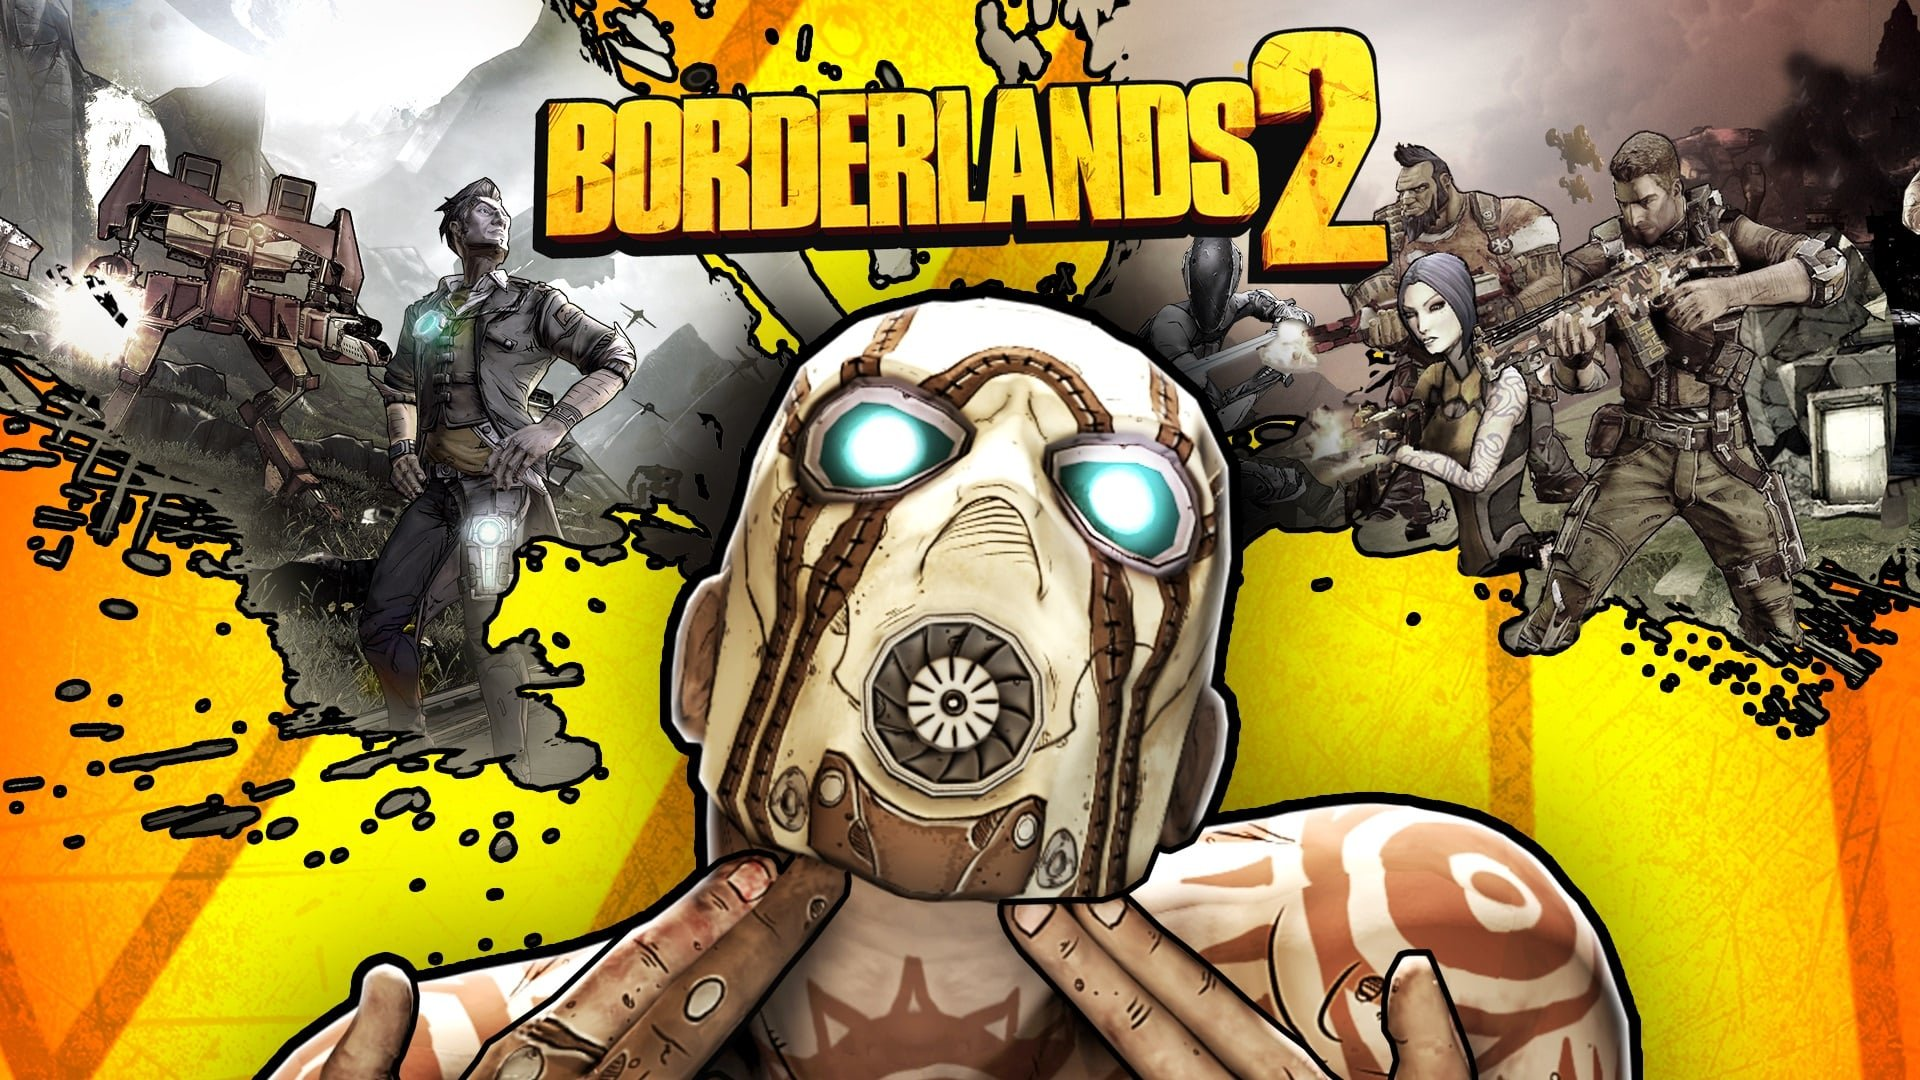 New Achievements Appear for Borderlands 2 on Xbox One, Four